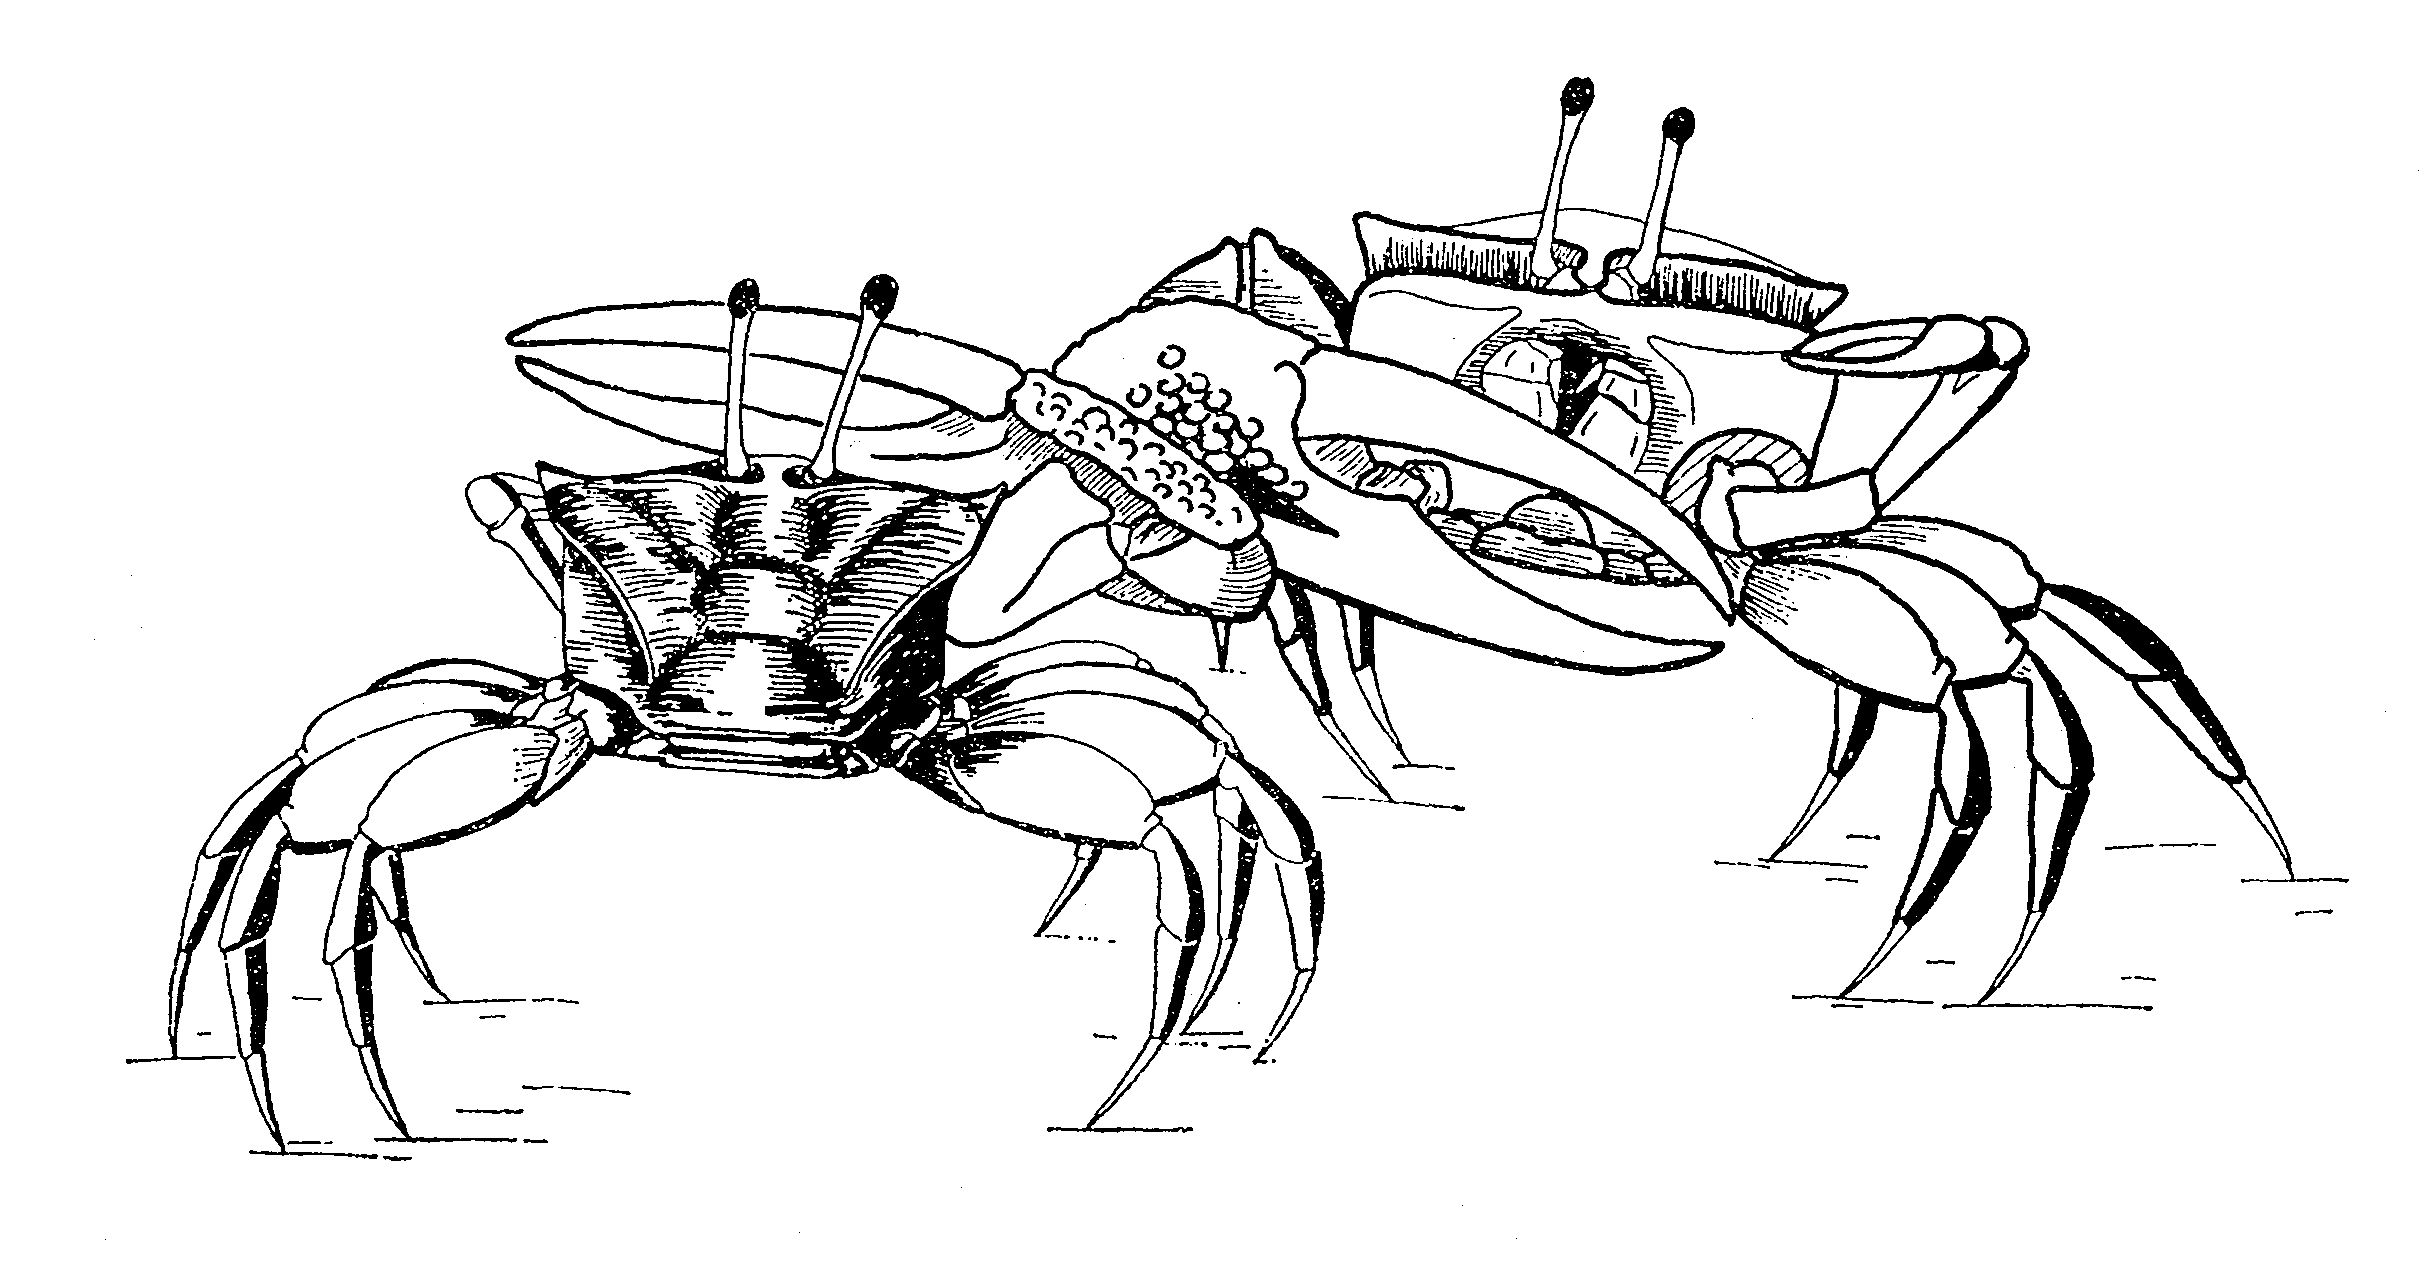 Fiddler Crab Drawing of Combat in Fiddler Crabs